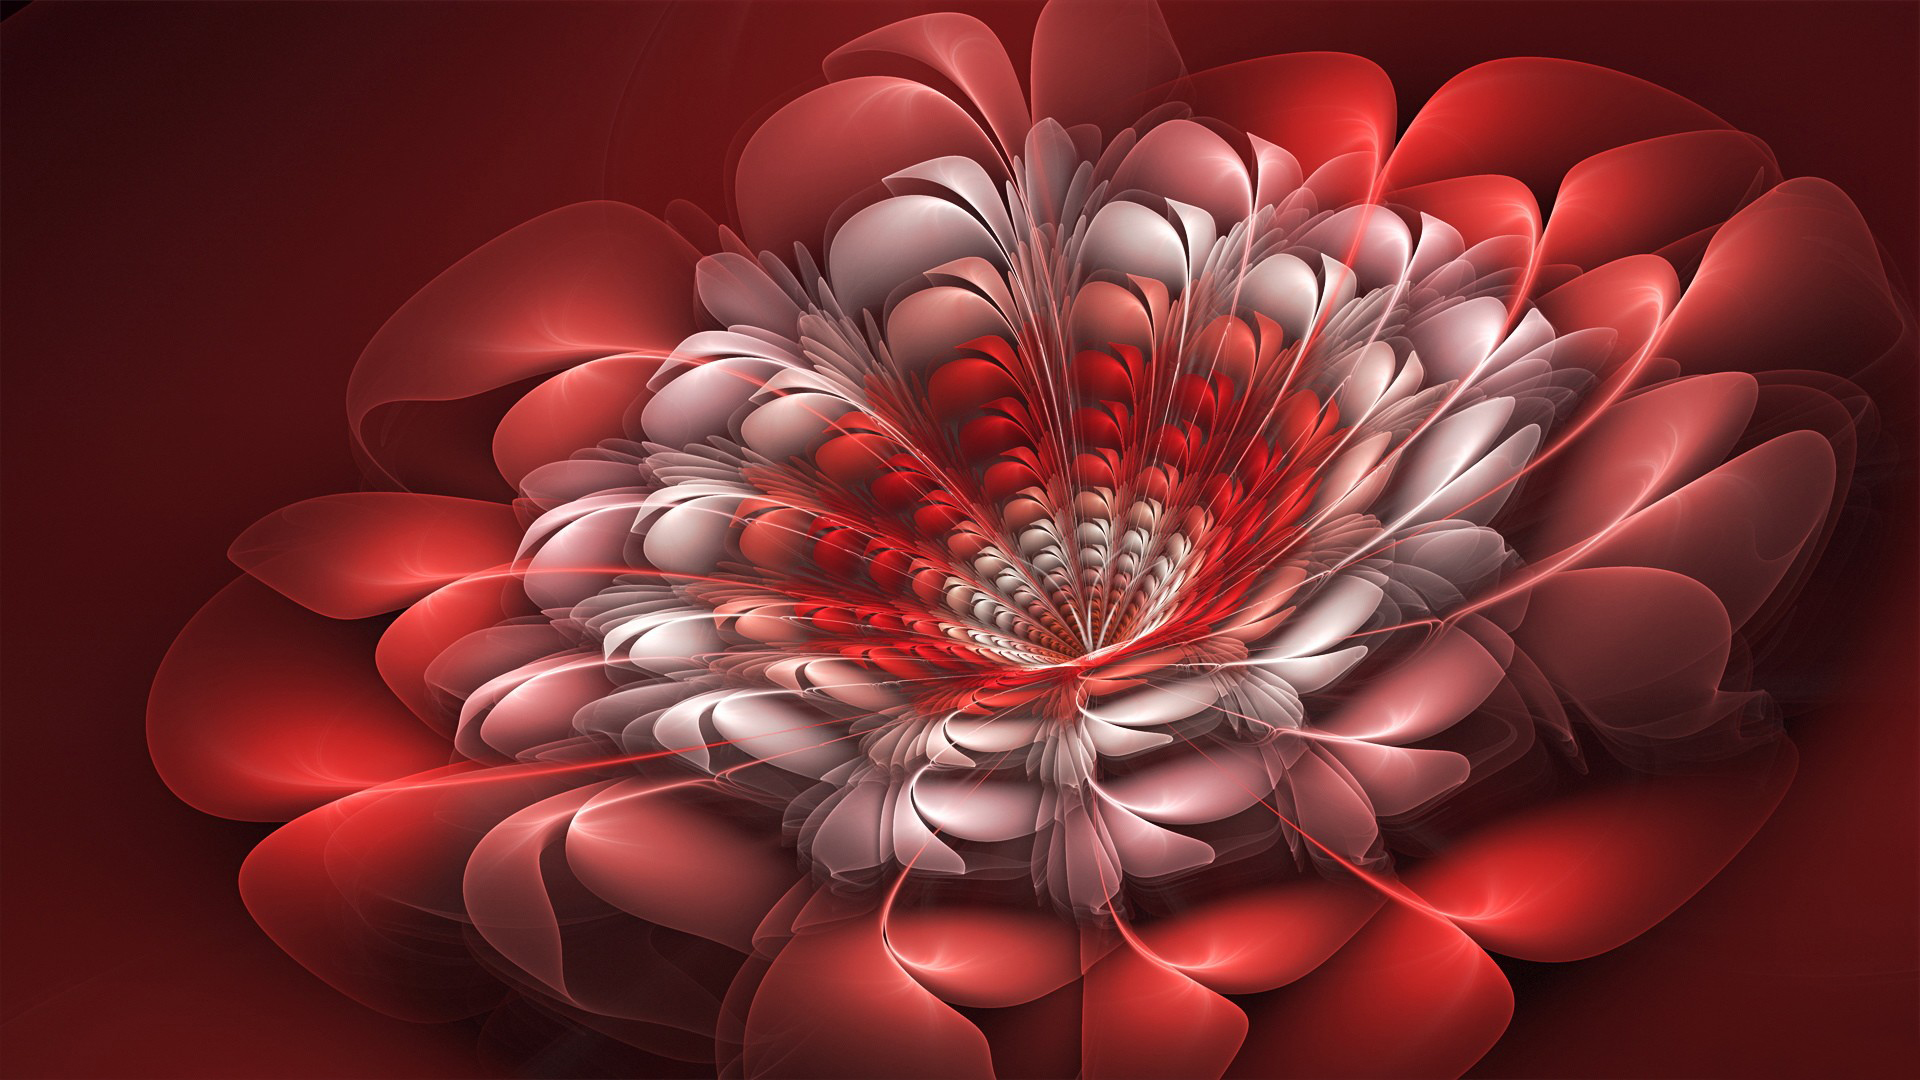 Abstract 3D Fractal Art Flowers